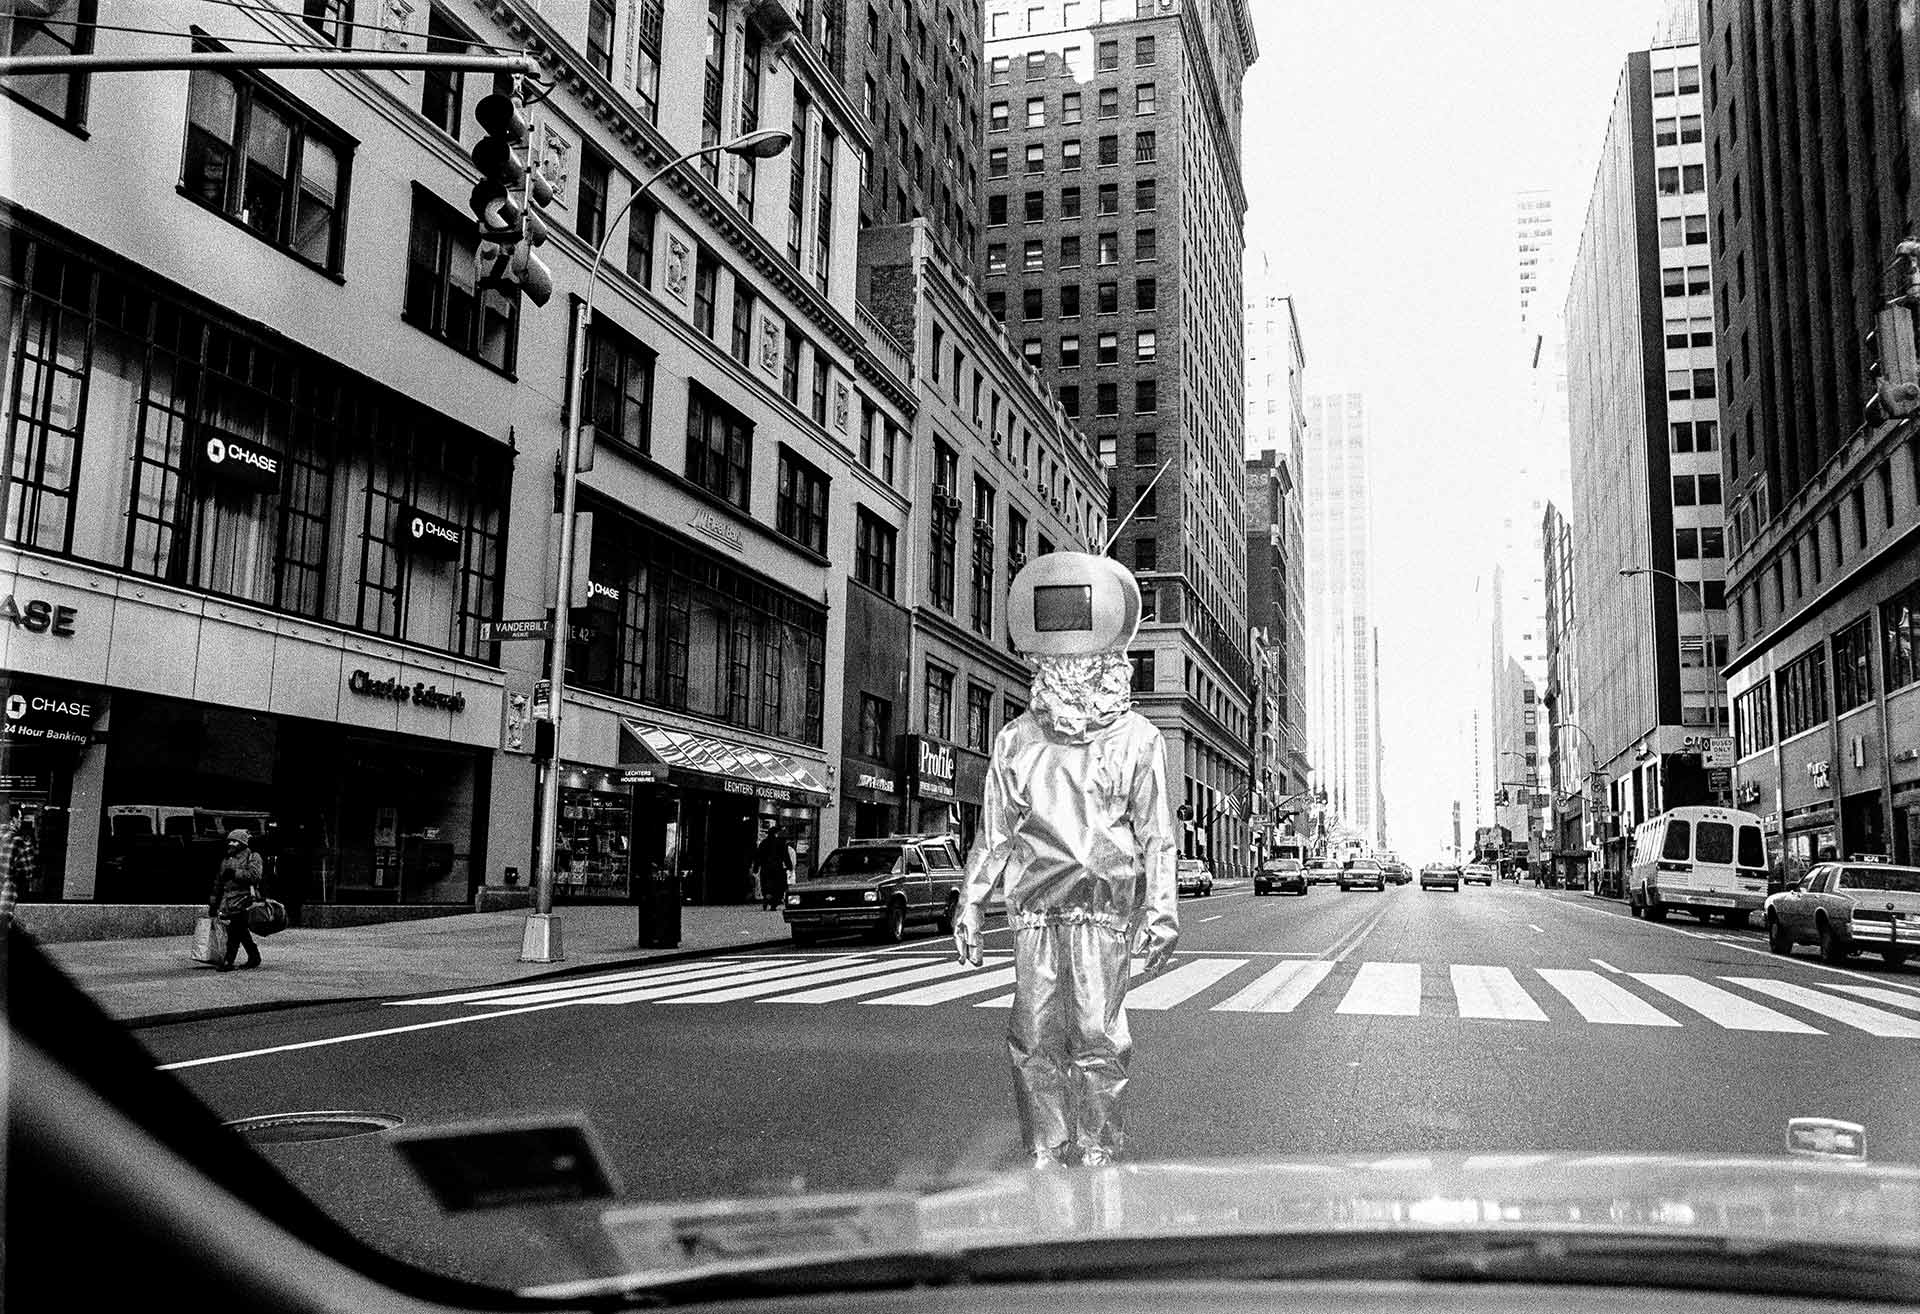 42nd St. Alien - Antonio Mari